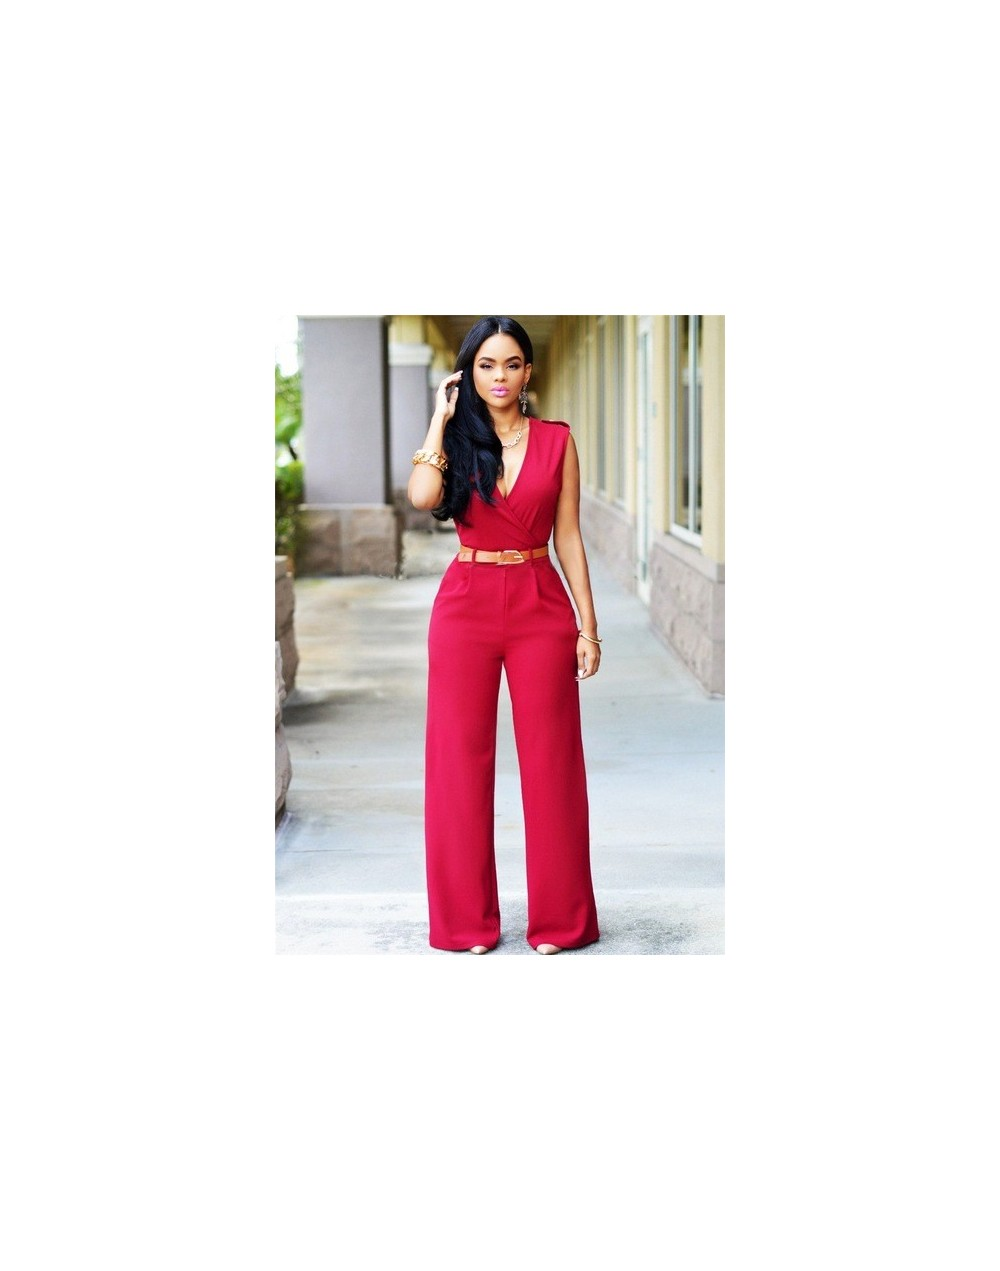 Deep V-neck High Waisted Monos Rompers With Sashes Solid Color Street Style Fashion Long Overalls Sexy Women's Jumpsuits S-2...